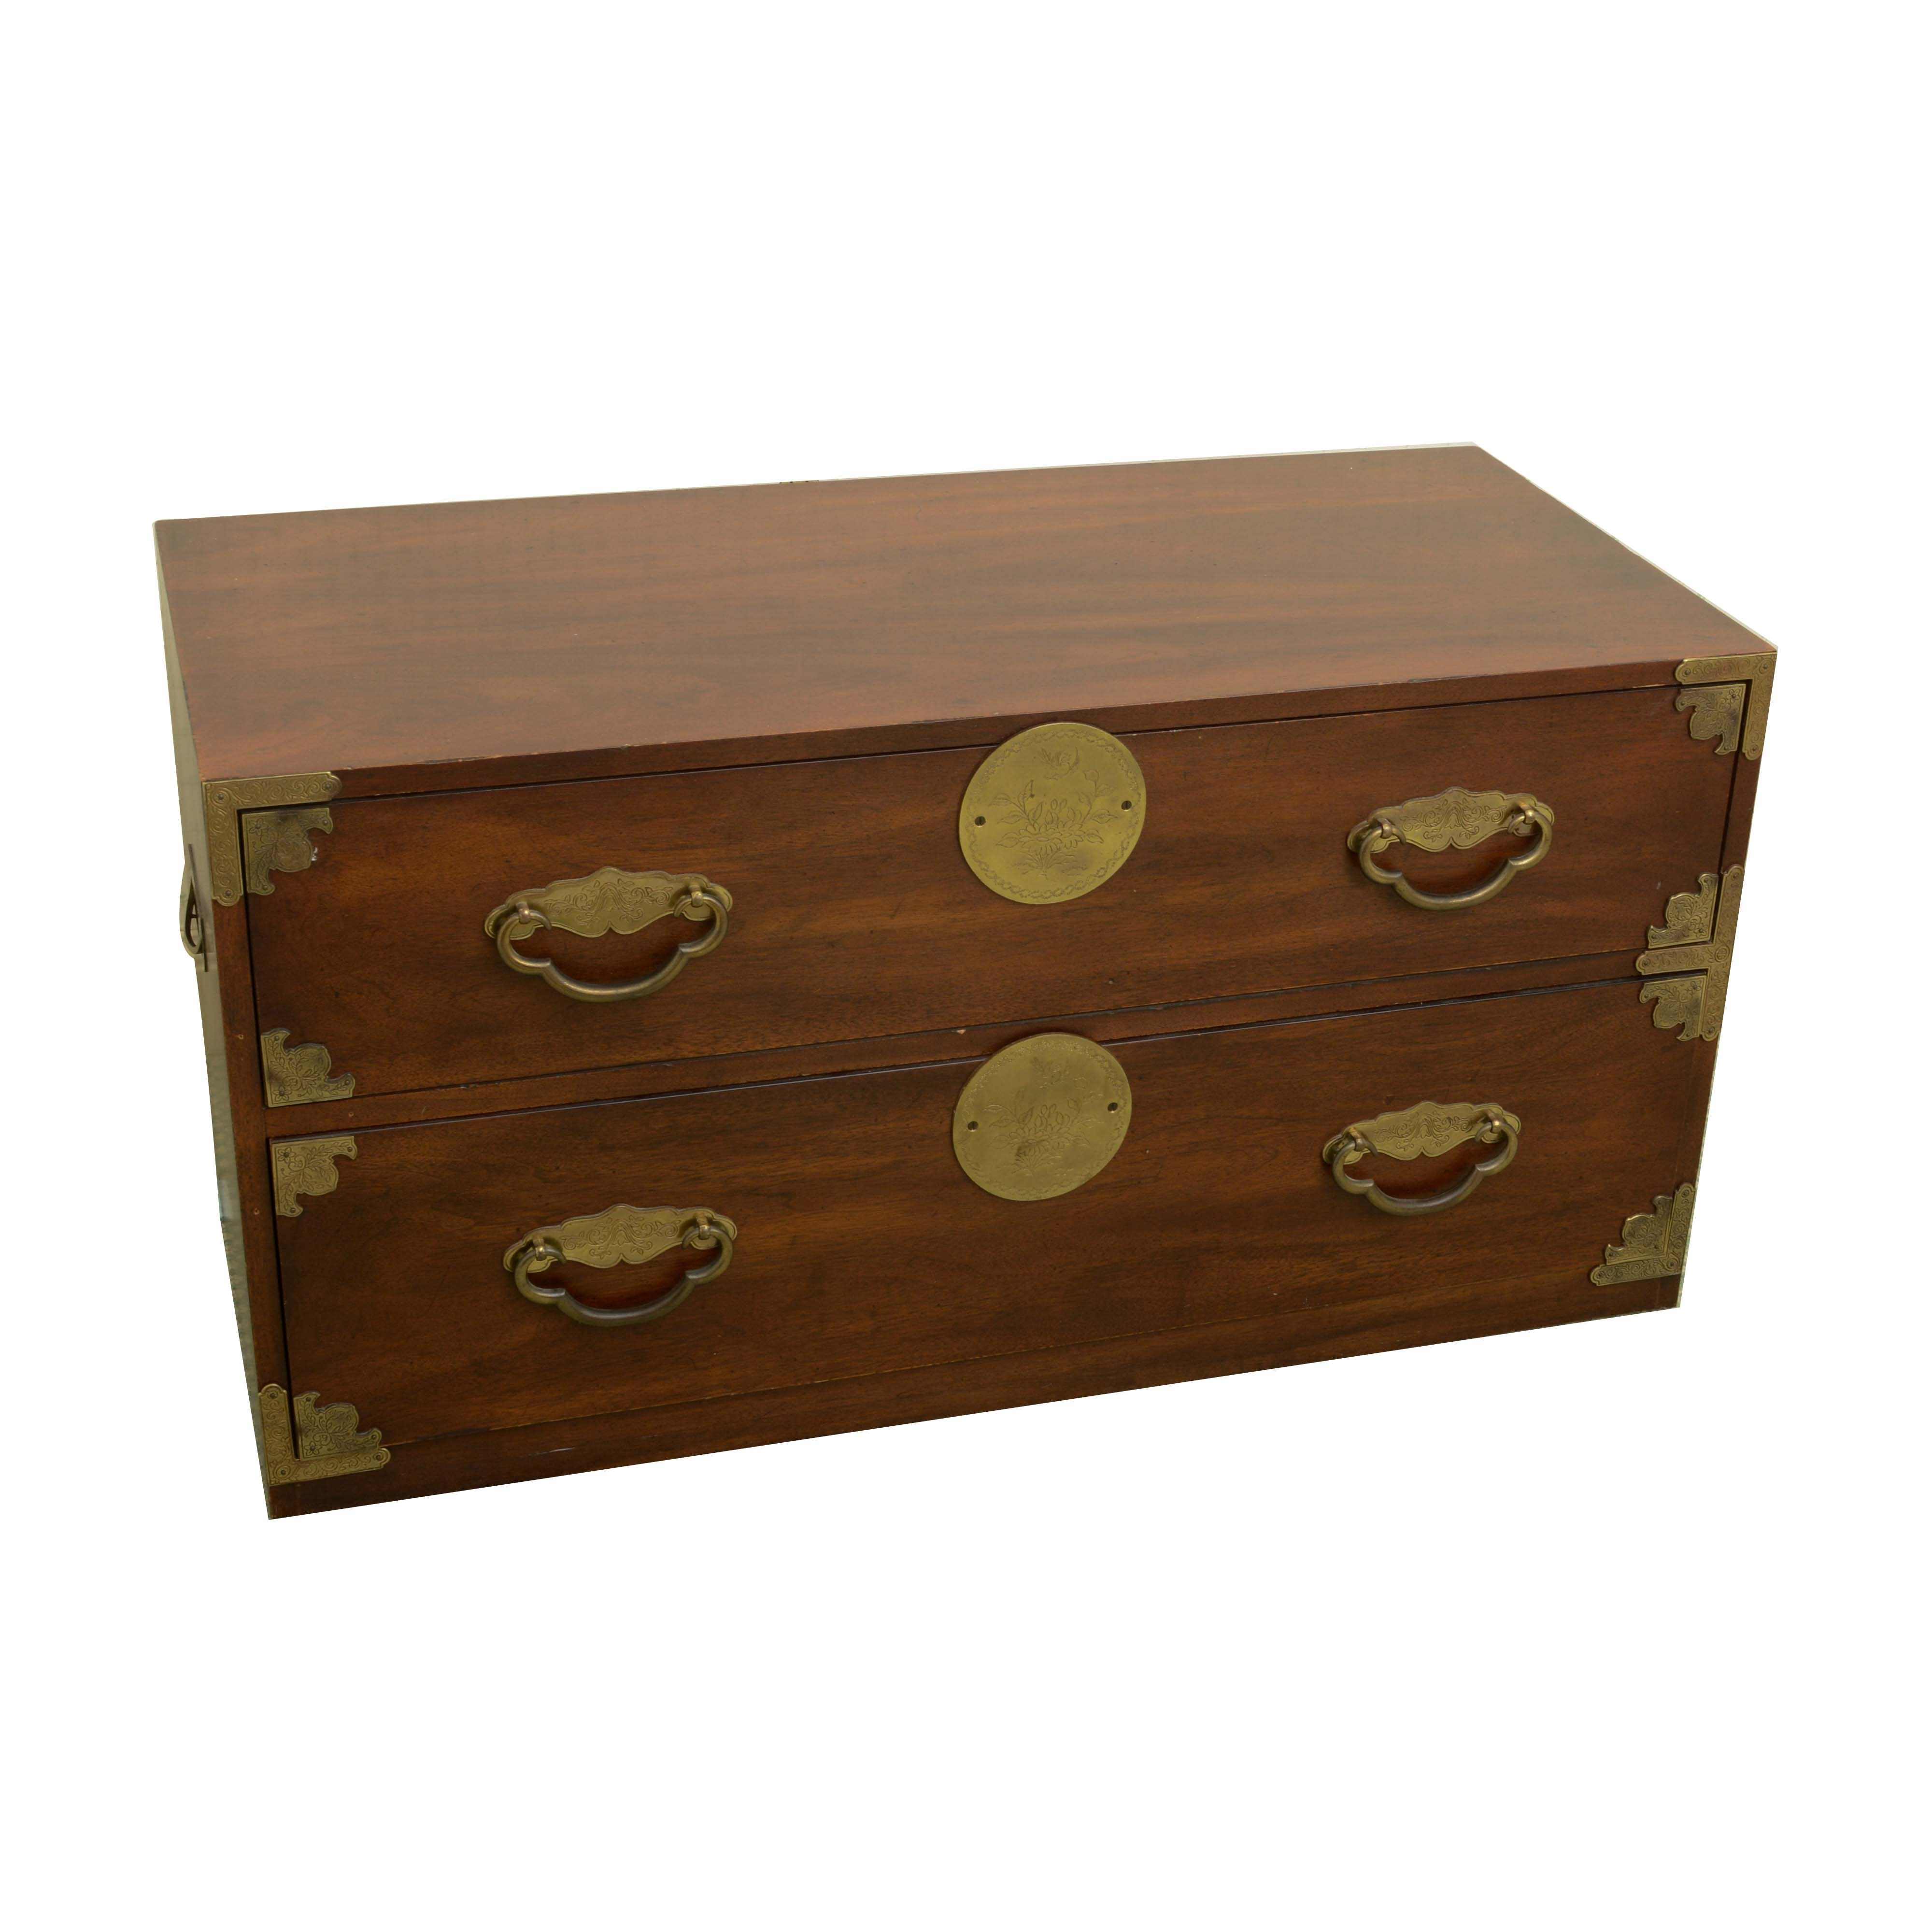 Chinese Inspired Tabletop Chest of Drawers by Henredon